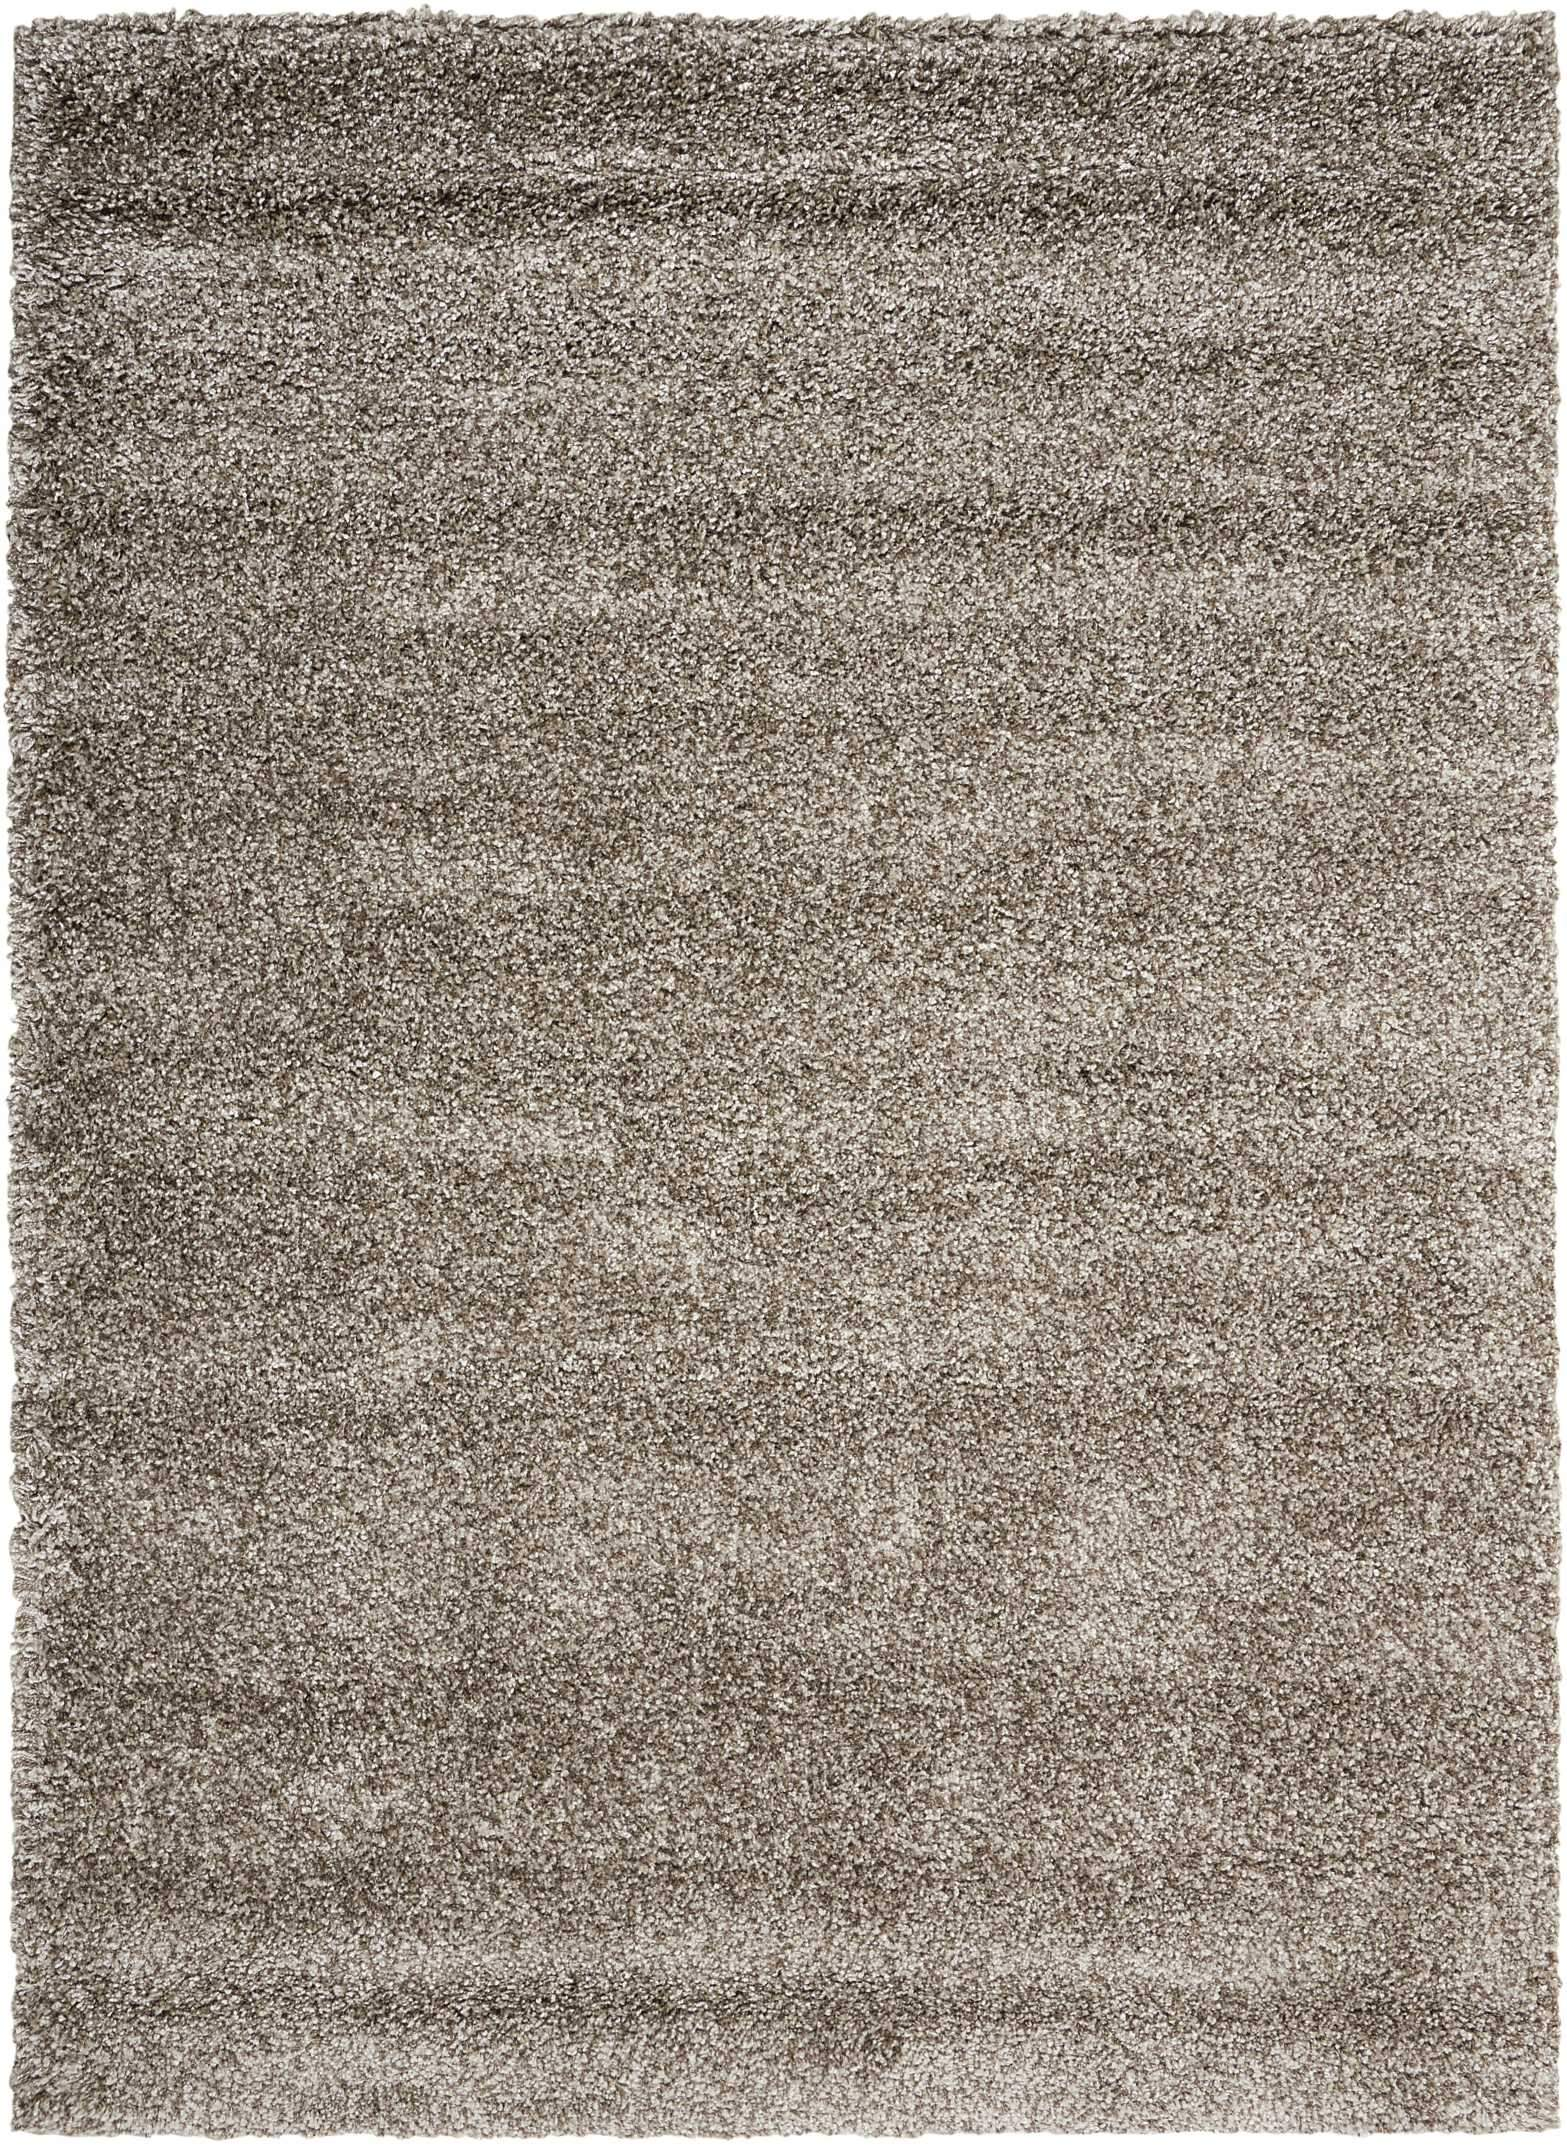 "Amore Stone Shag Area Rug 3'11"" x 5'11"" Rugs Nourison 3'11"" x 5'11"" Accent"